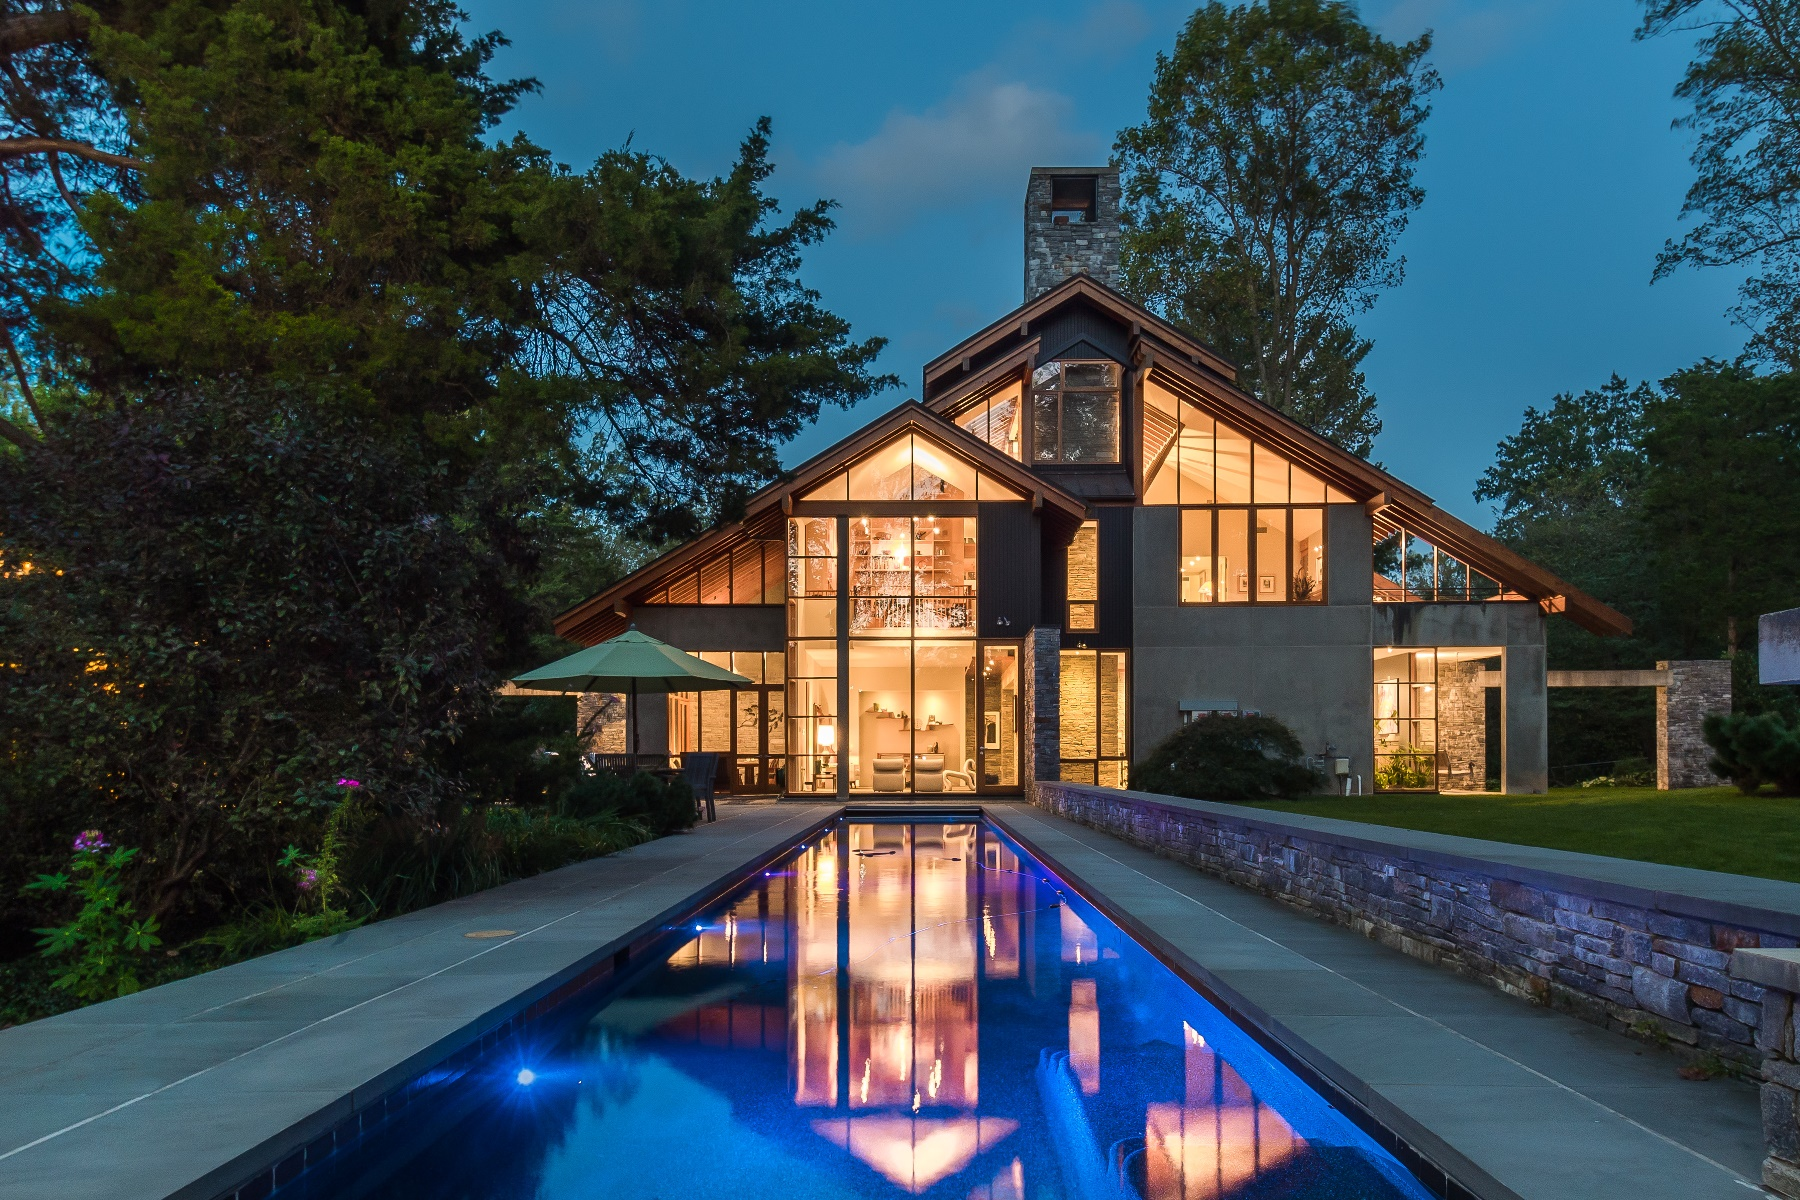 Single Family Home for Sale at 1012 Langley Hill Drive, Mclean McLean, Virginia, 22101 United States